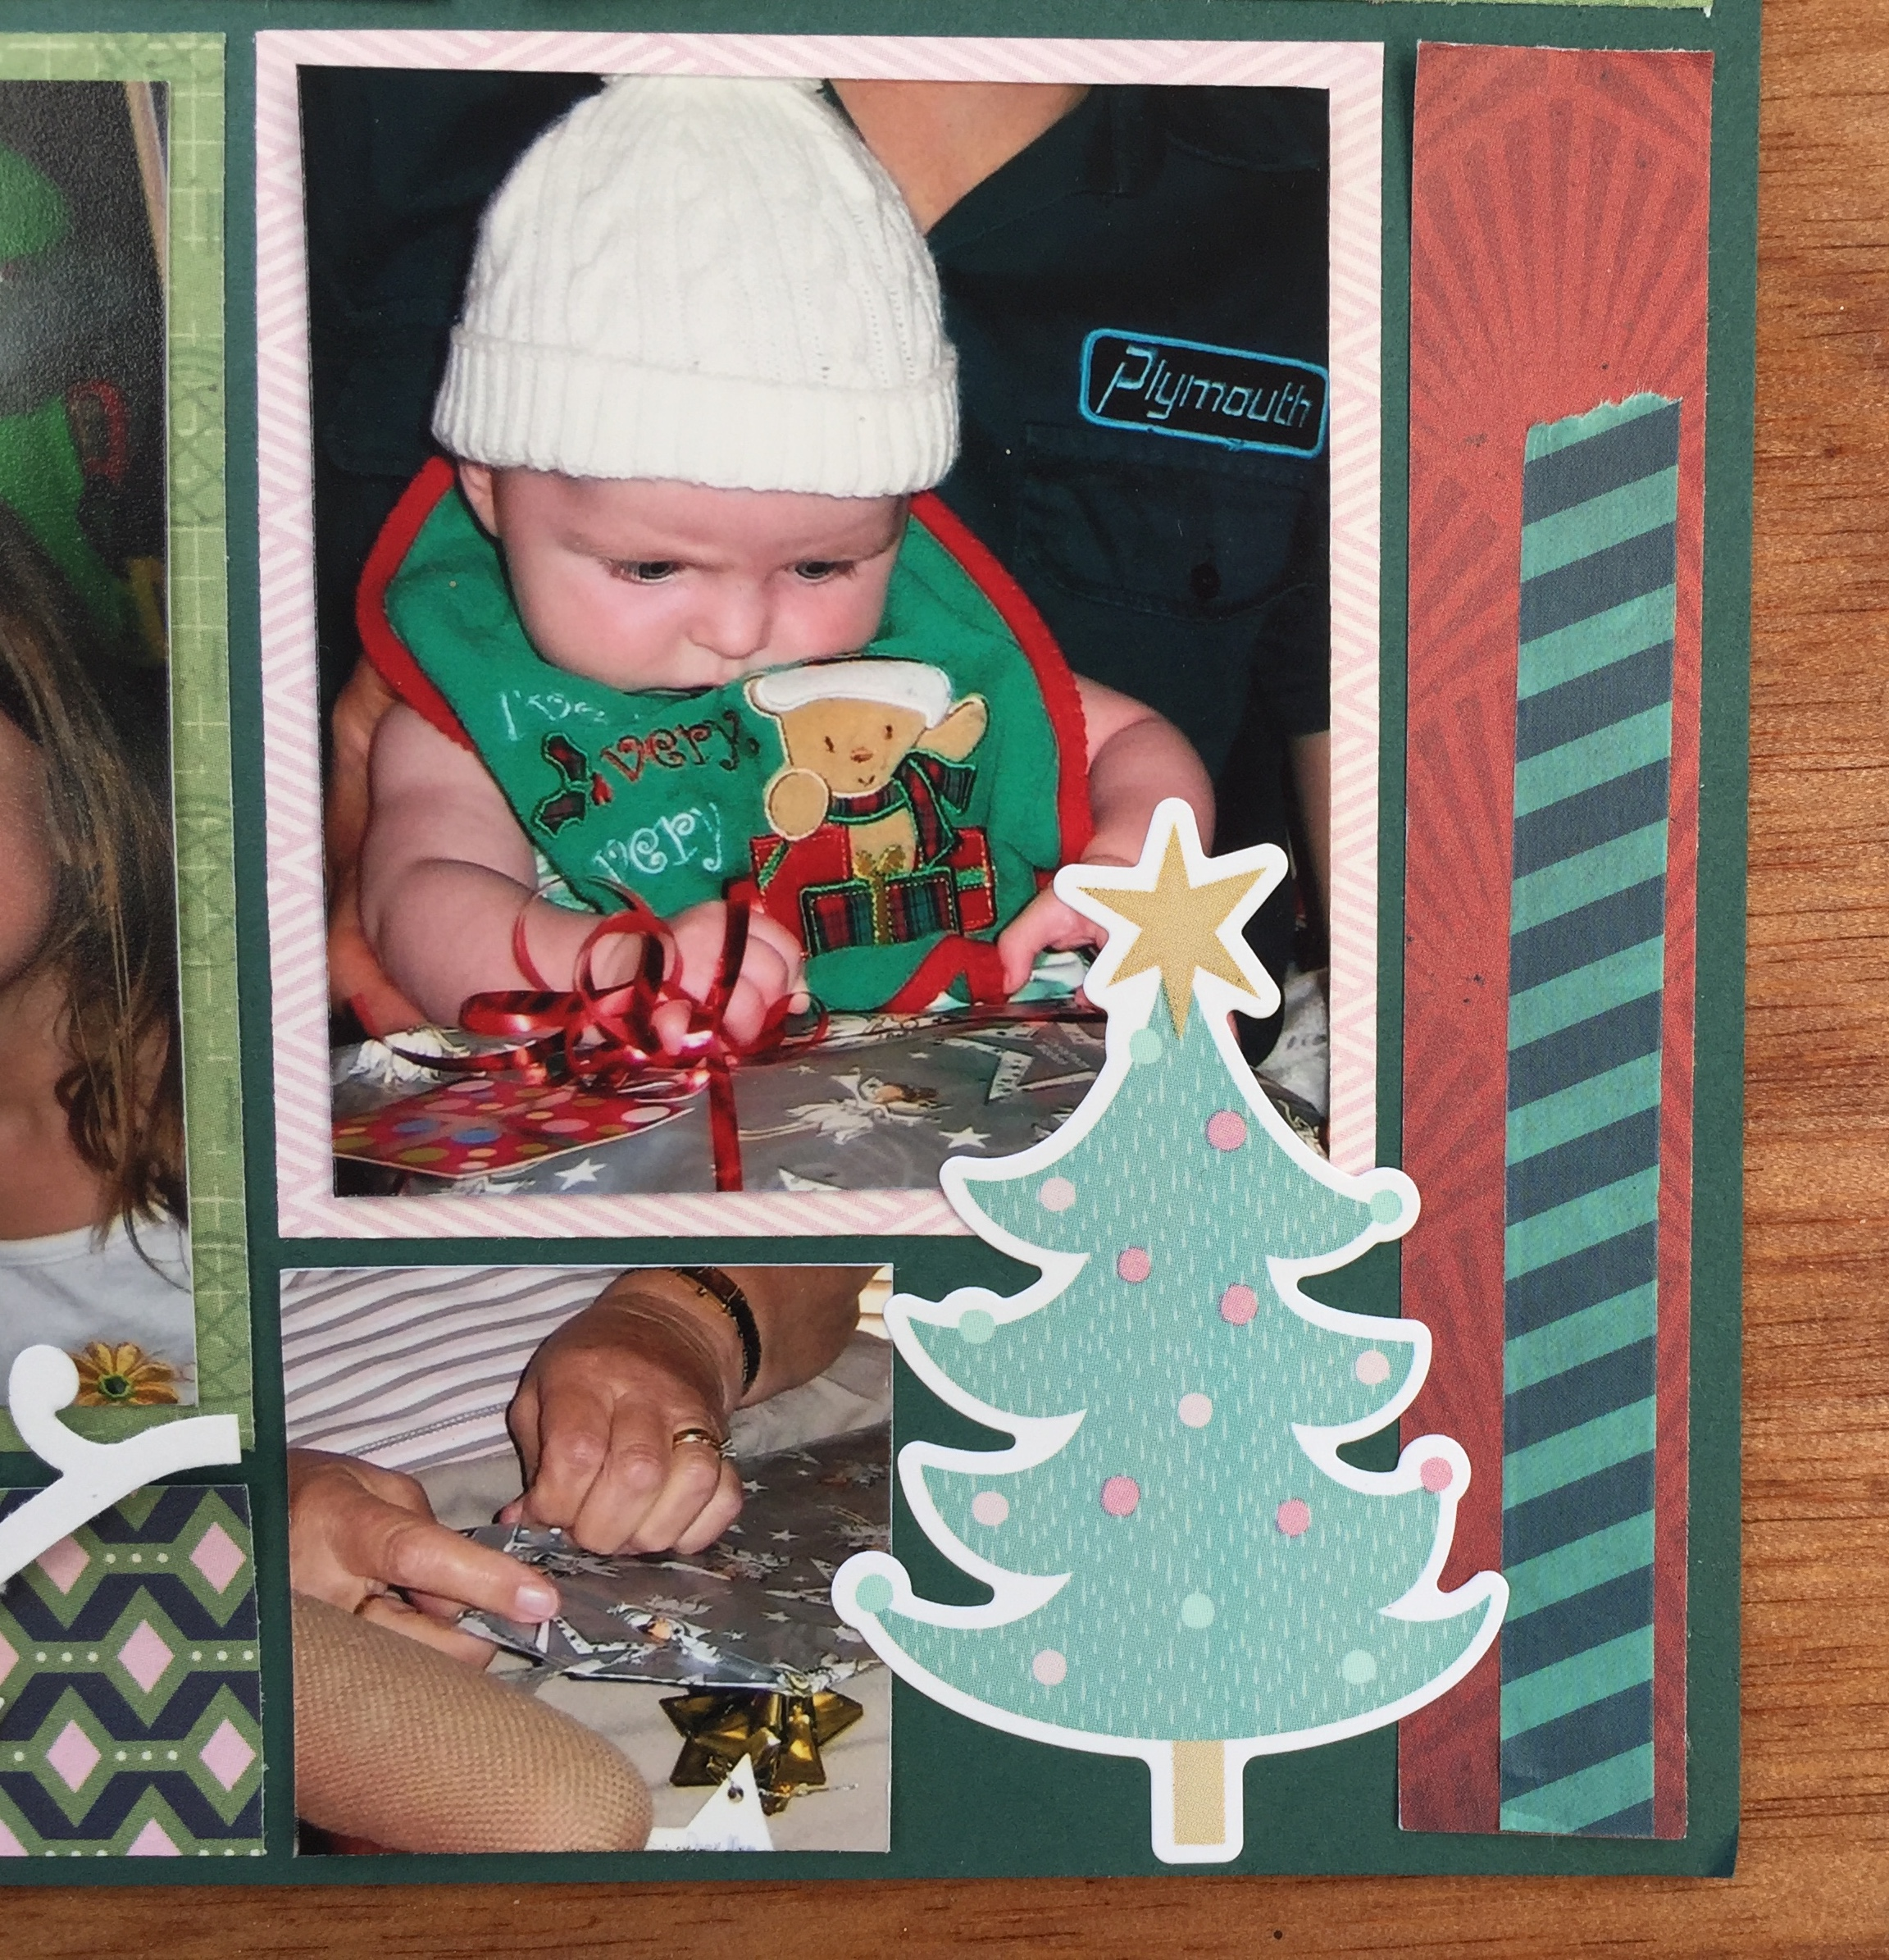 Creative-Memories-12-Days-Of-Cropping